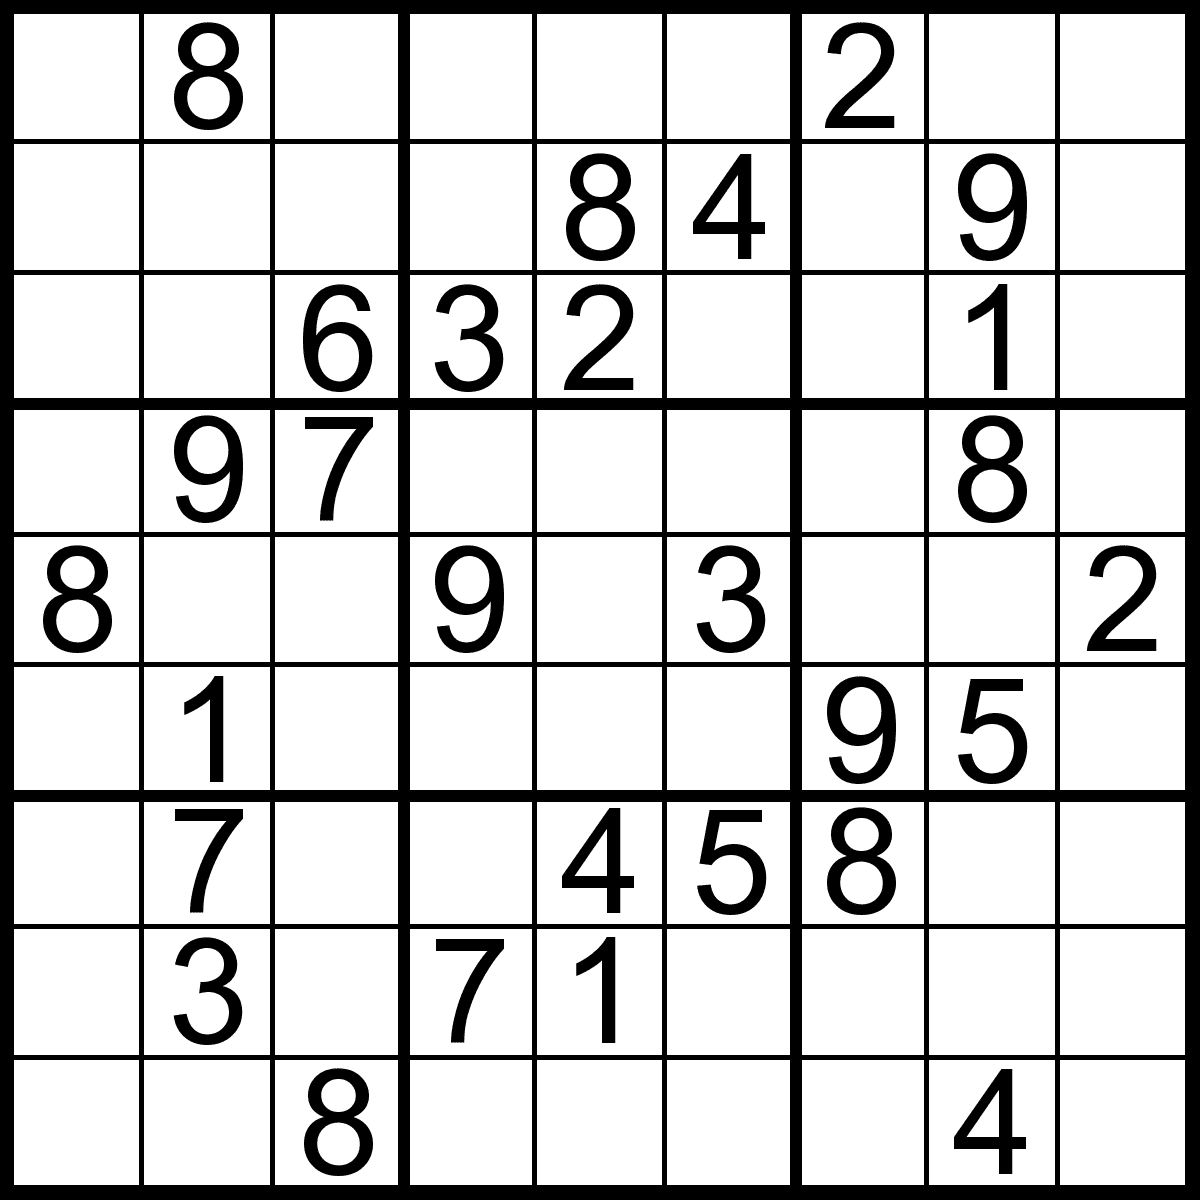 Easy Sudoku Puzzles Online